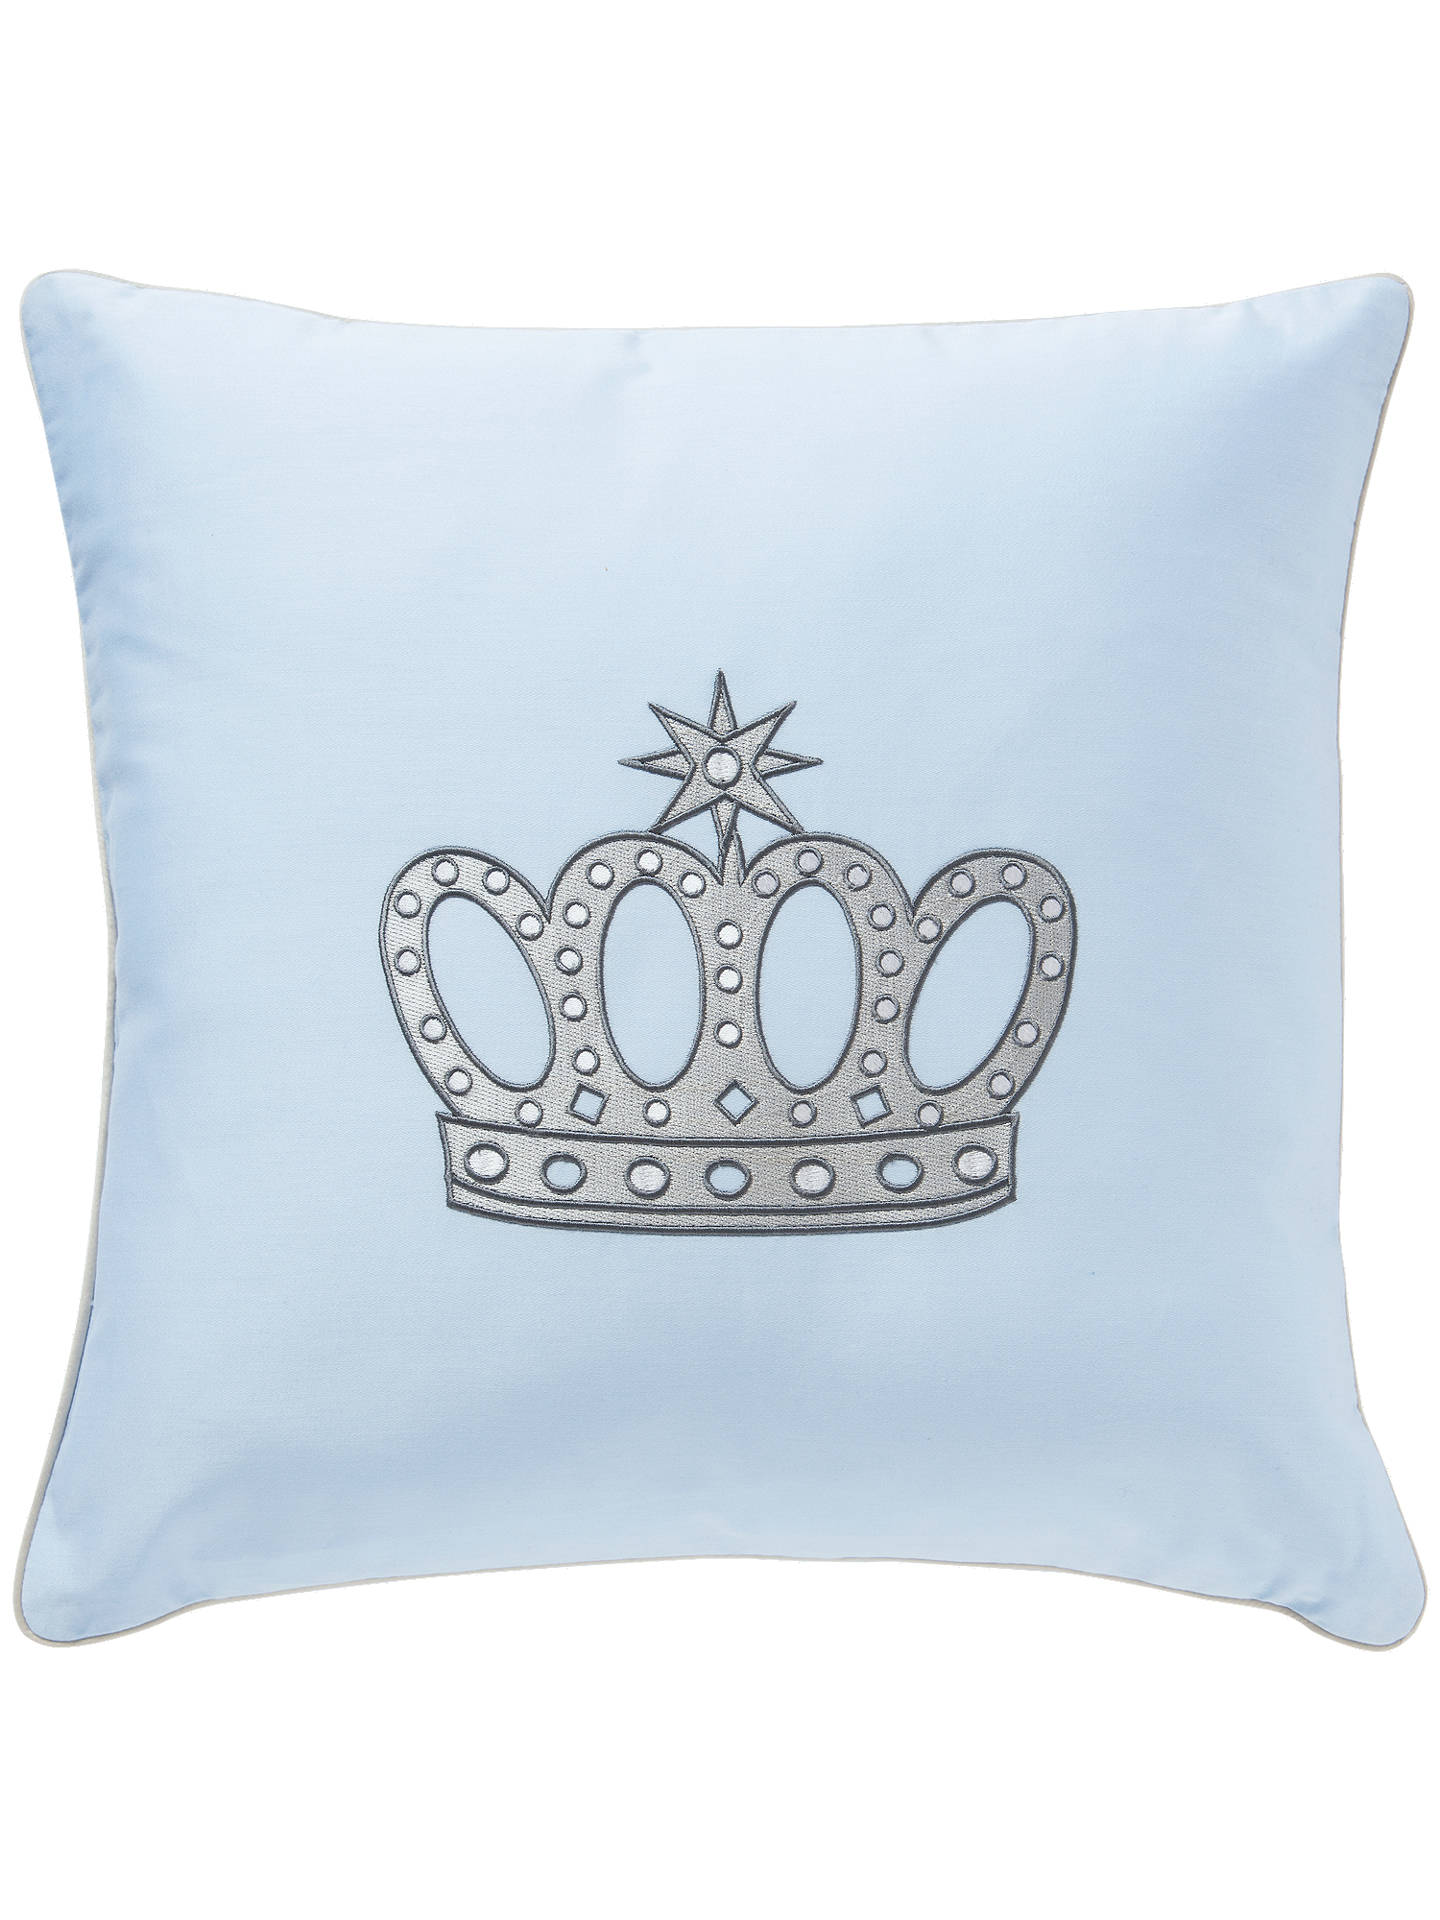 BuyRachel Riley My Little Prince Embroidered Crown Cushion, Light Blue Online at johnlewis.com